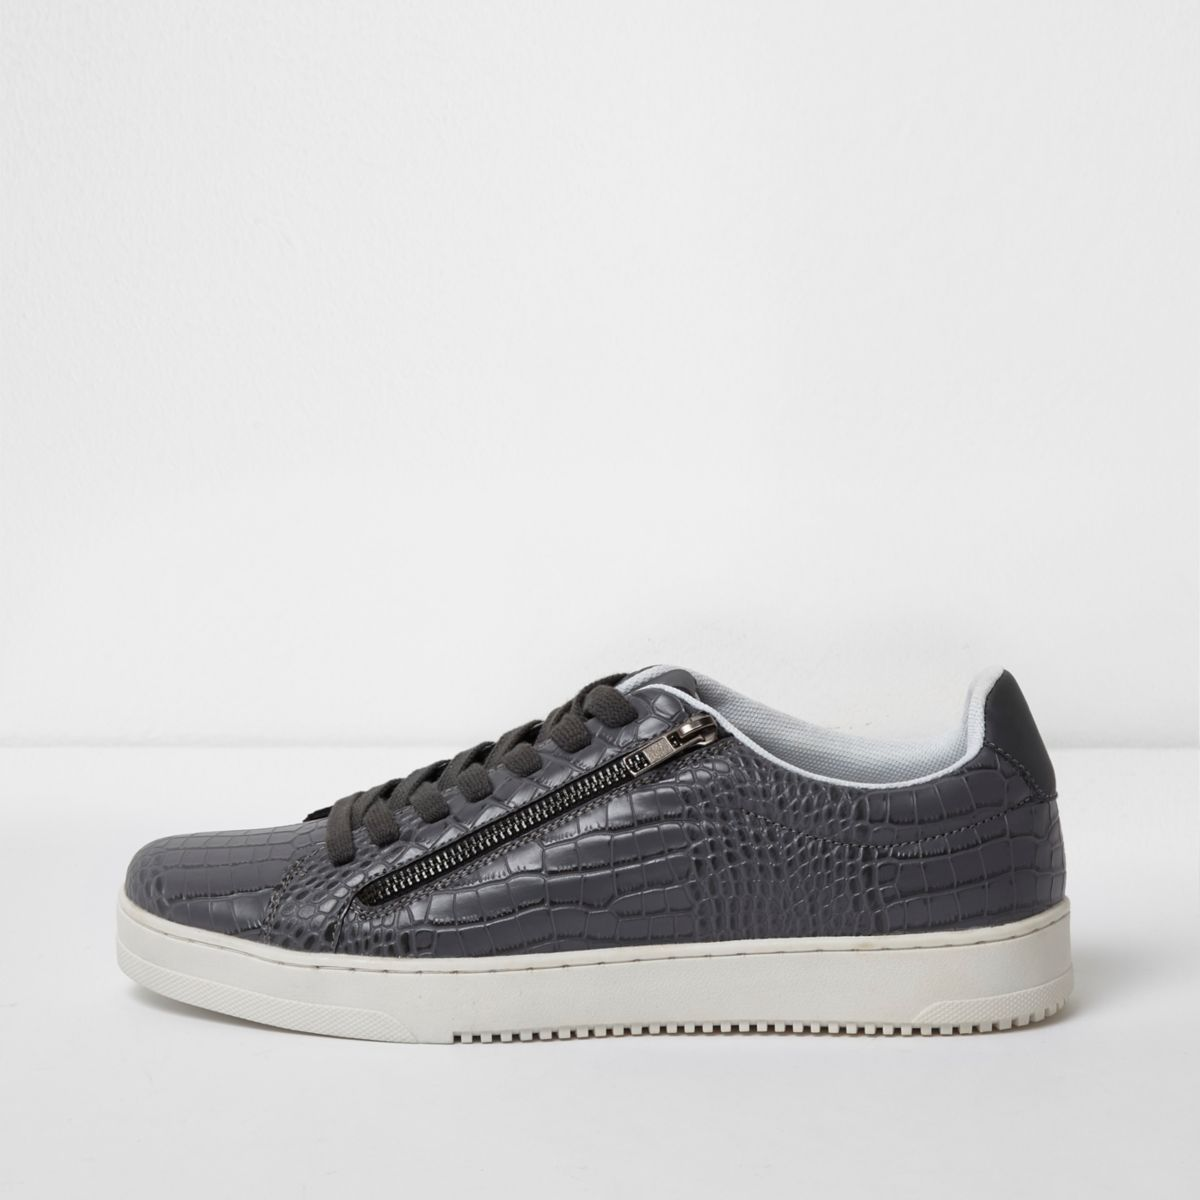 Grey croc embossed lace-up plimsolls